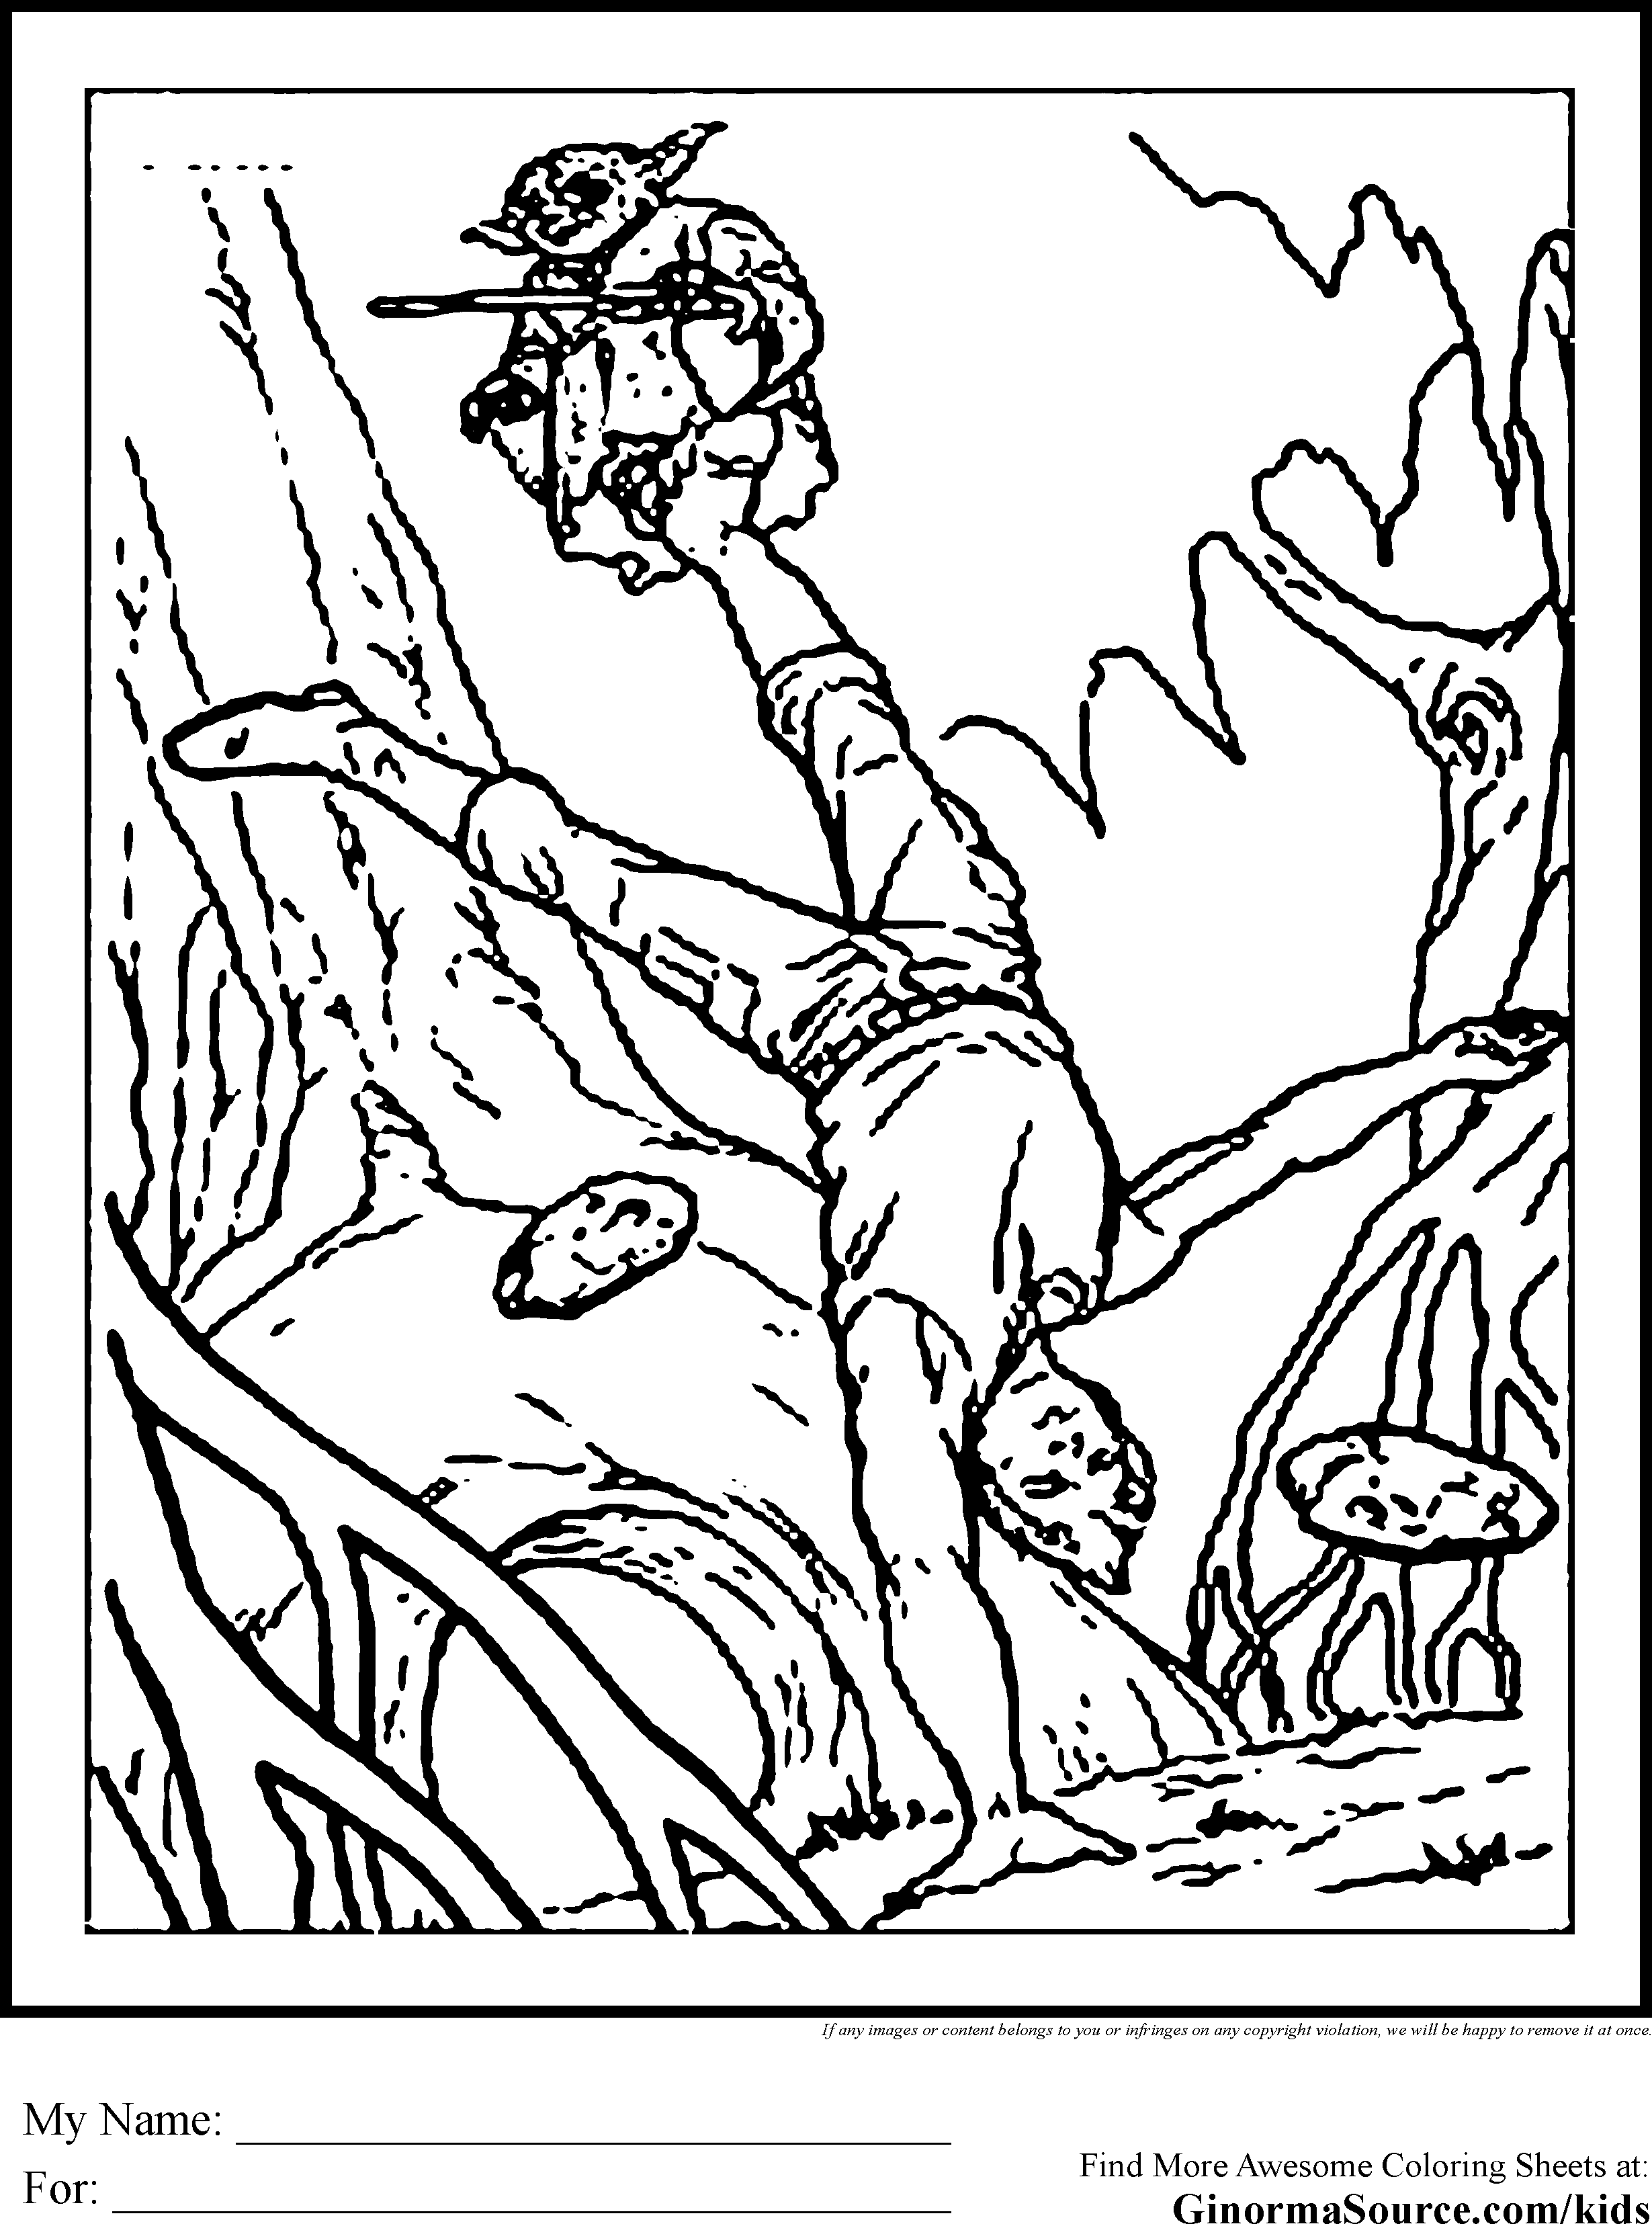 Disney Coloring Pages Star Wars : Star wars coloring pages home